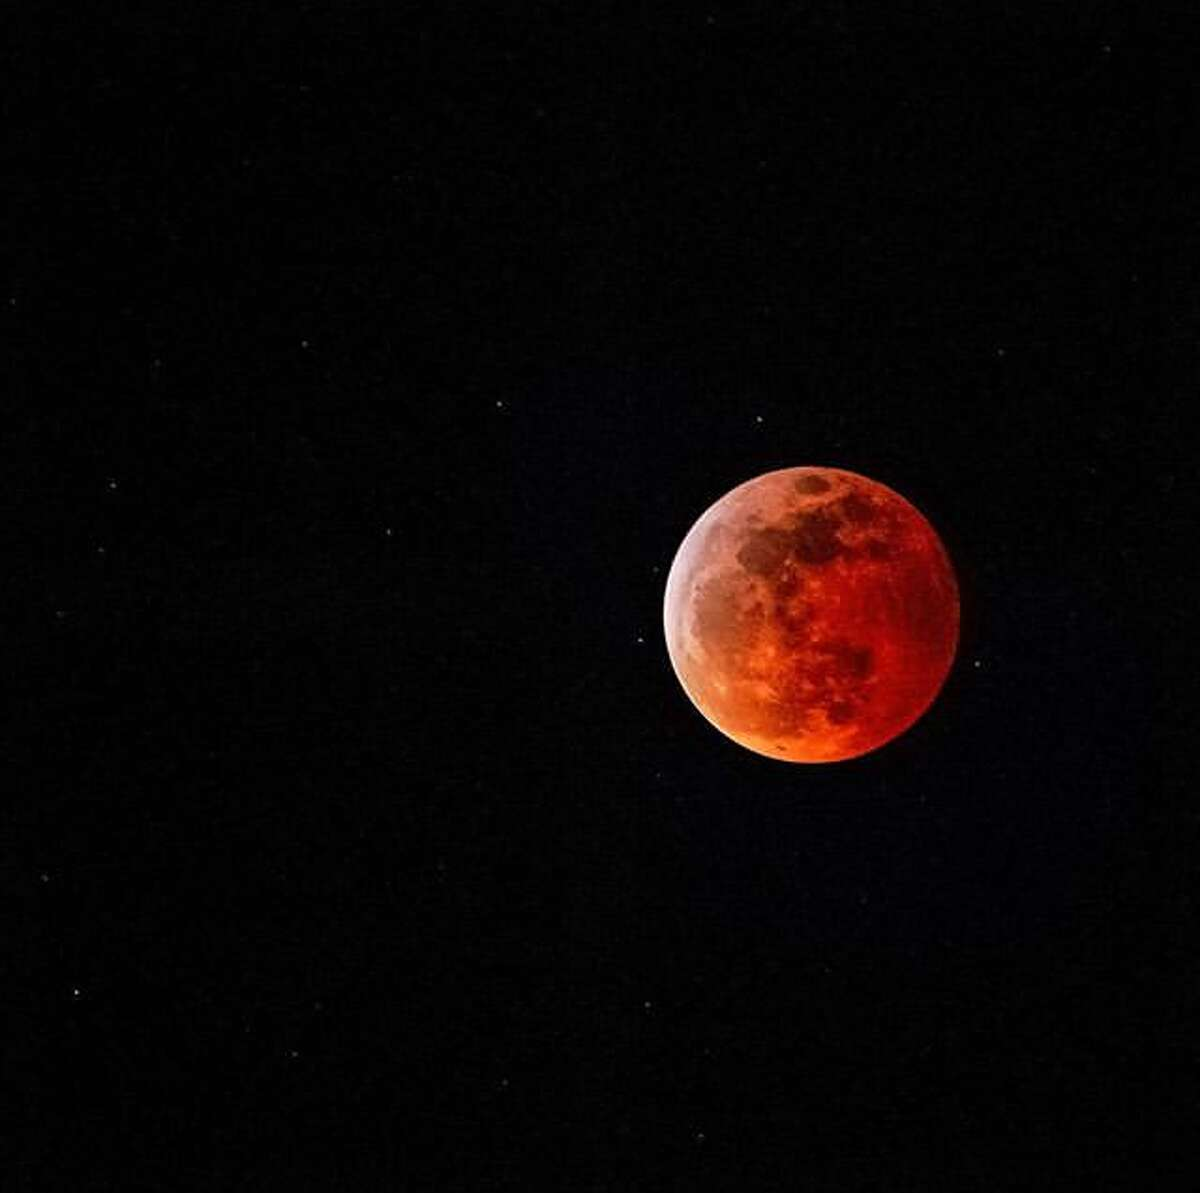 @gcmak took this shot from Lands End of the Super Blood Wolf Moon Lunar Eclipse on Sunday, January 20, 2019.